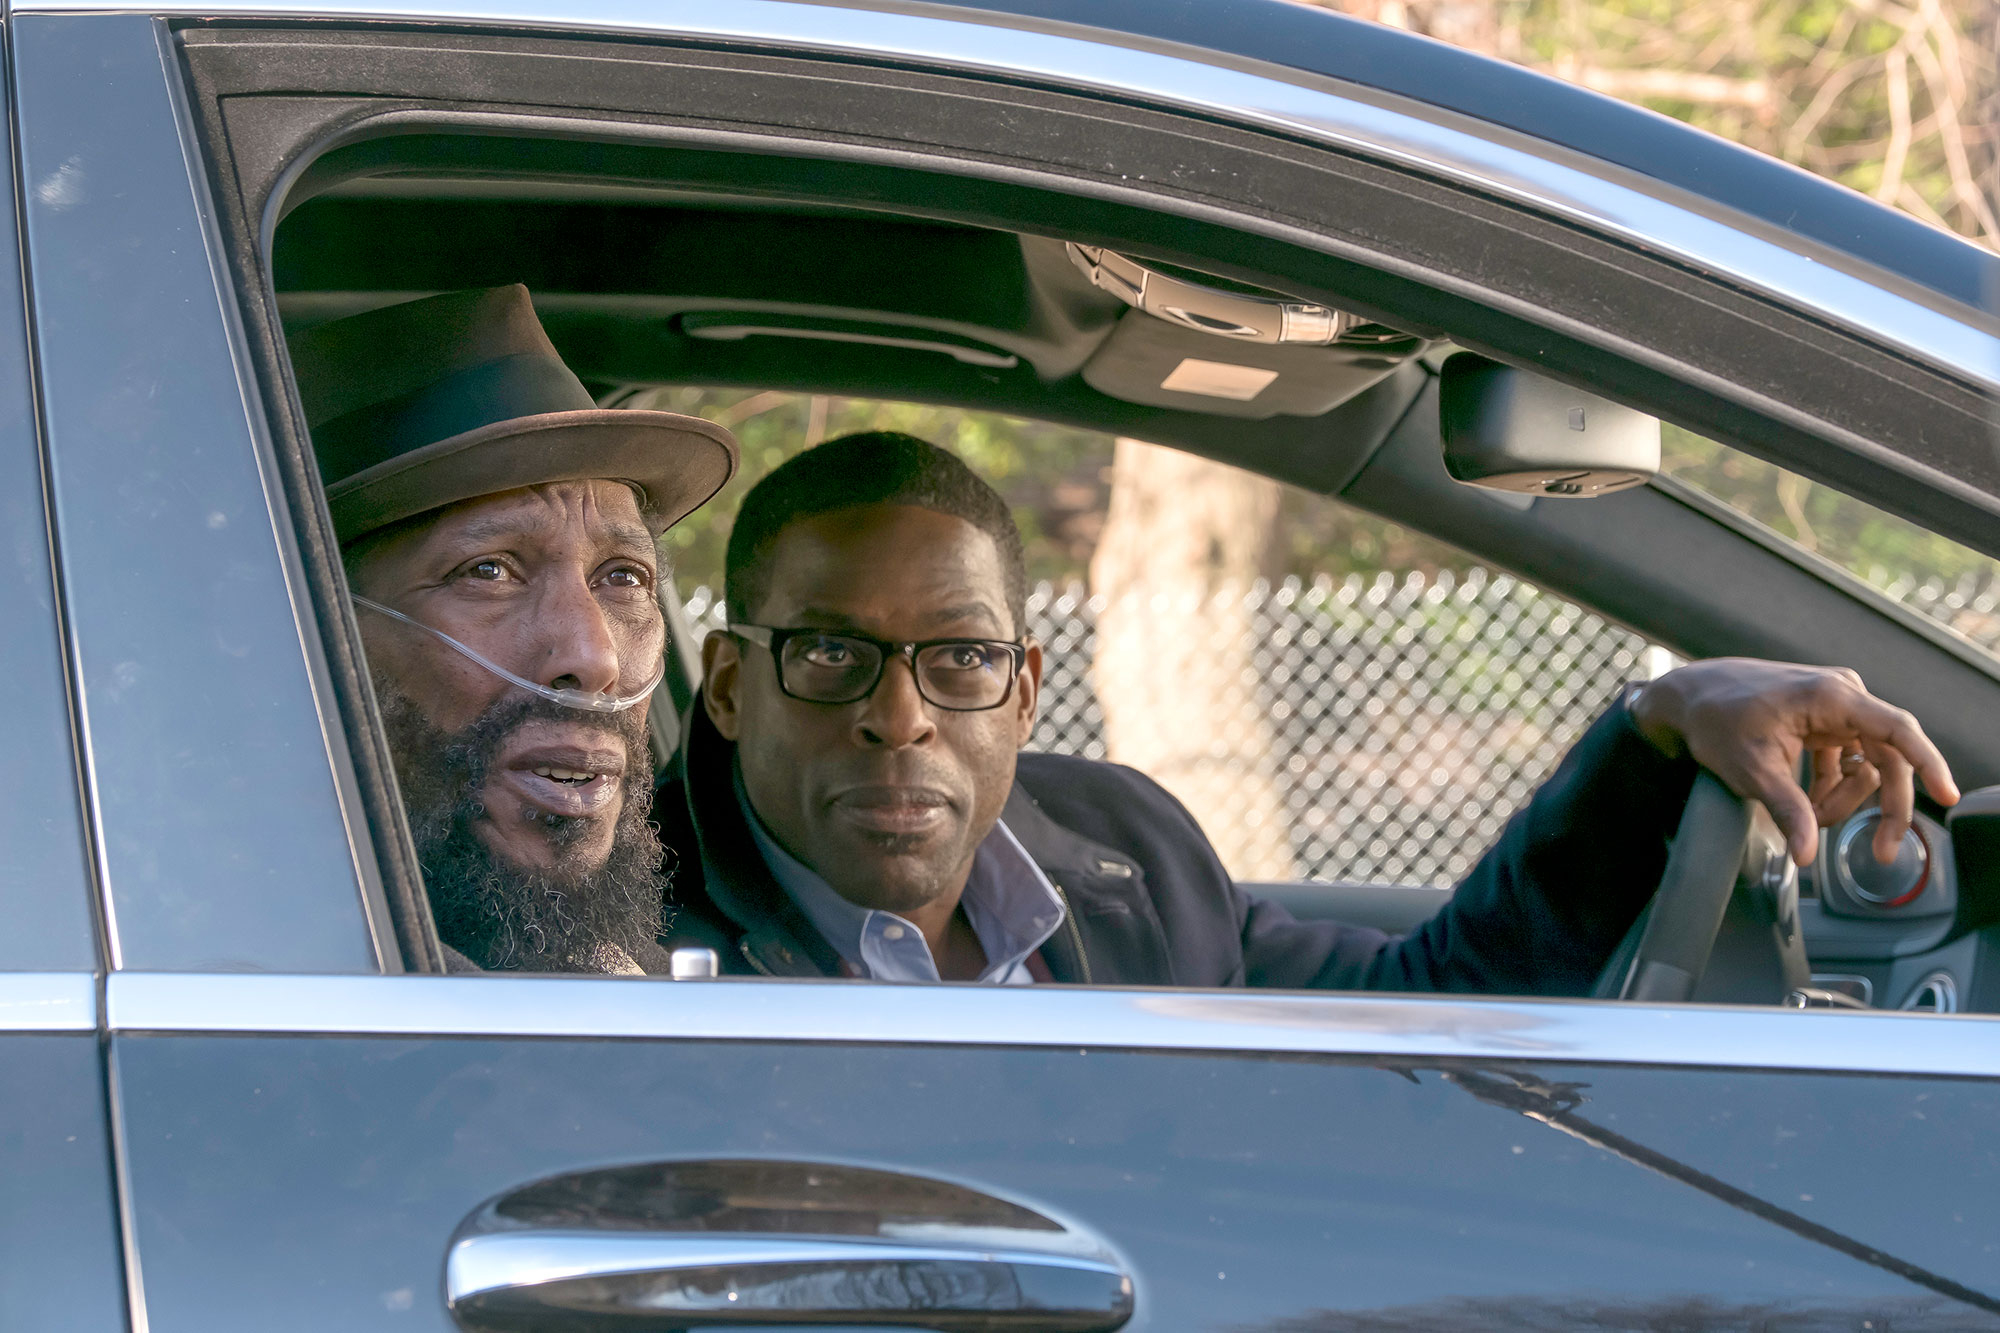 Ron Cephas Jones as William, Sterling K. Brown as Randall